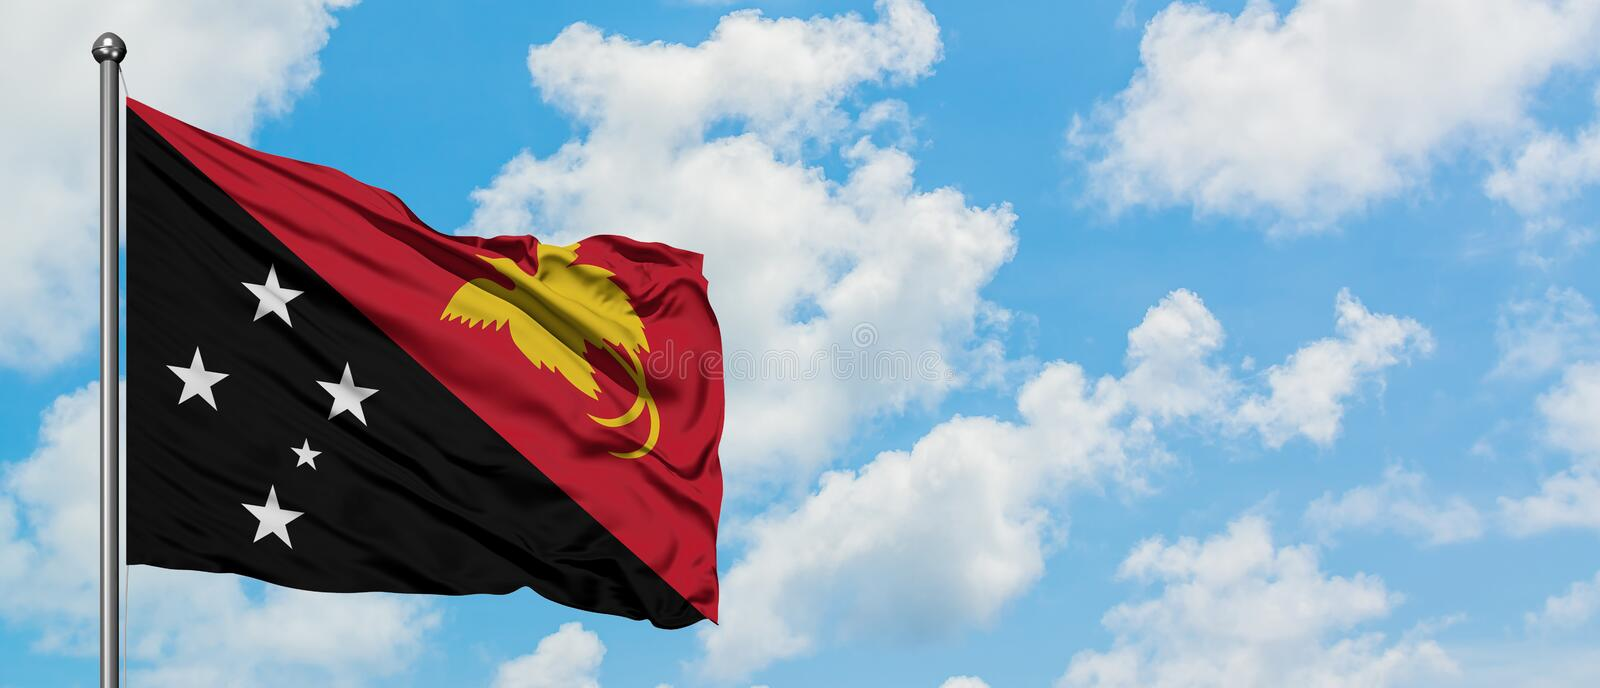 Papua New Guinea flag waving in the wind against white cloudy blue sky. Diplomacy concept, international relations.  stock image